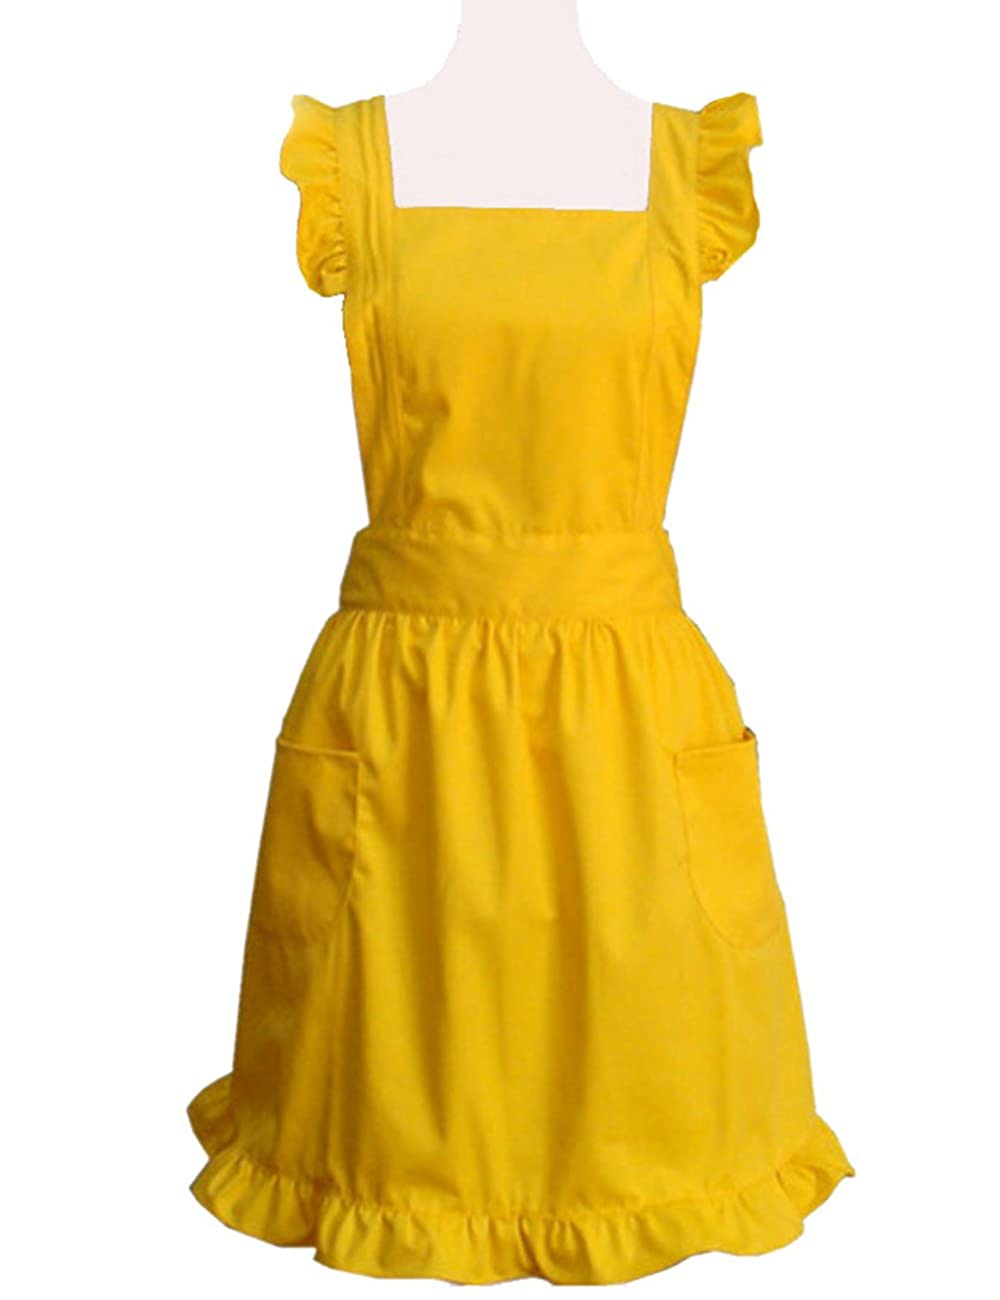 Hyzrz Cute Lovely Cotton Retro Kitchen Cooking Aprons for Women Girls Vintage Baking Sexy Victorian Apron with Pockets for Gift (Yellow) 0